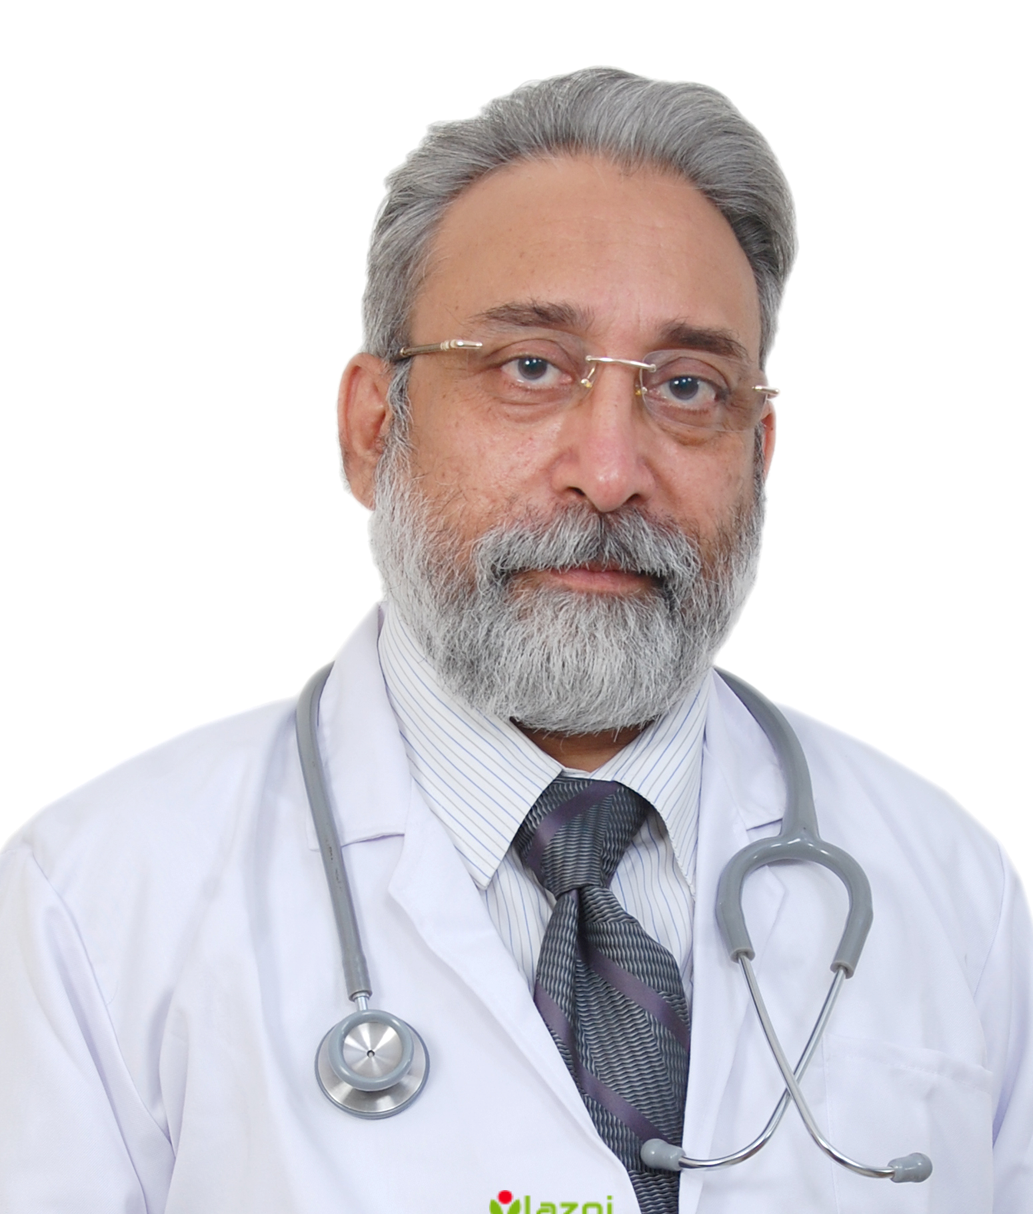 sleep Disorders in Saraswati Vihar North West Delhi, sinus Surgery in Saraswati Vihar North West Delhi, ENT Surgery in Saraswati Vihar North West Delhi, Tinnitus in Saraswati Vihar North West Delhi, Micro Ear Surgery in Saraswati Vihar North West Delhi, Middle Ear Endoscopy in Saraswati Vihar North West Delhi, Nasal Surgery in Saraswati Vihar North West Delhi, Neck Surgery in Saraswati Vihar North West Delhi, Hearing Implant Surgery in Saraswati Vihar North West Delhi,  in Saraswati Vihar North West Delhi, strep throat in Saraswati Vihar North West Delhi, sinus in Saraswati Vihar North West Delhi, neck problem in Saraswati Vihar North West Delhi, hearing disorders in Saraswati Vihar North West Delhi, deafness in Saraswati Vihar North West Delhi, Sinusitis in Saraswati Vihar North West Delhi, nose injuries in Saraswati Vihar North West Delhi, common cold